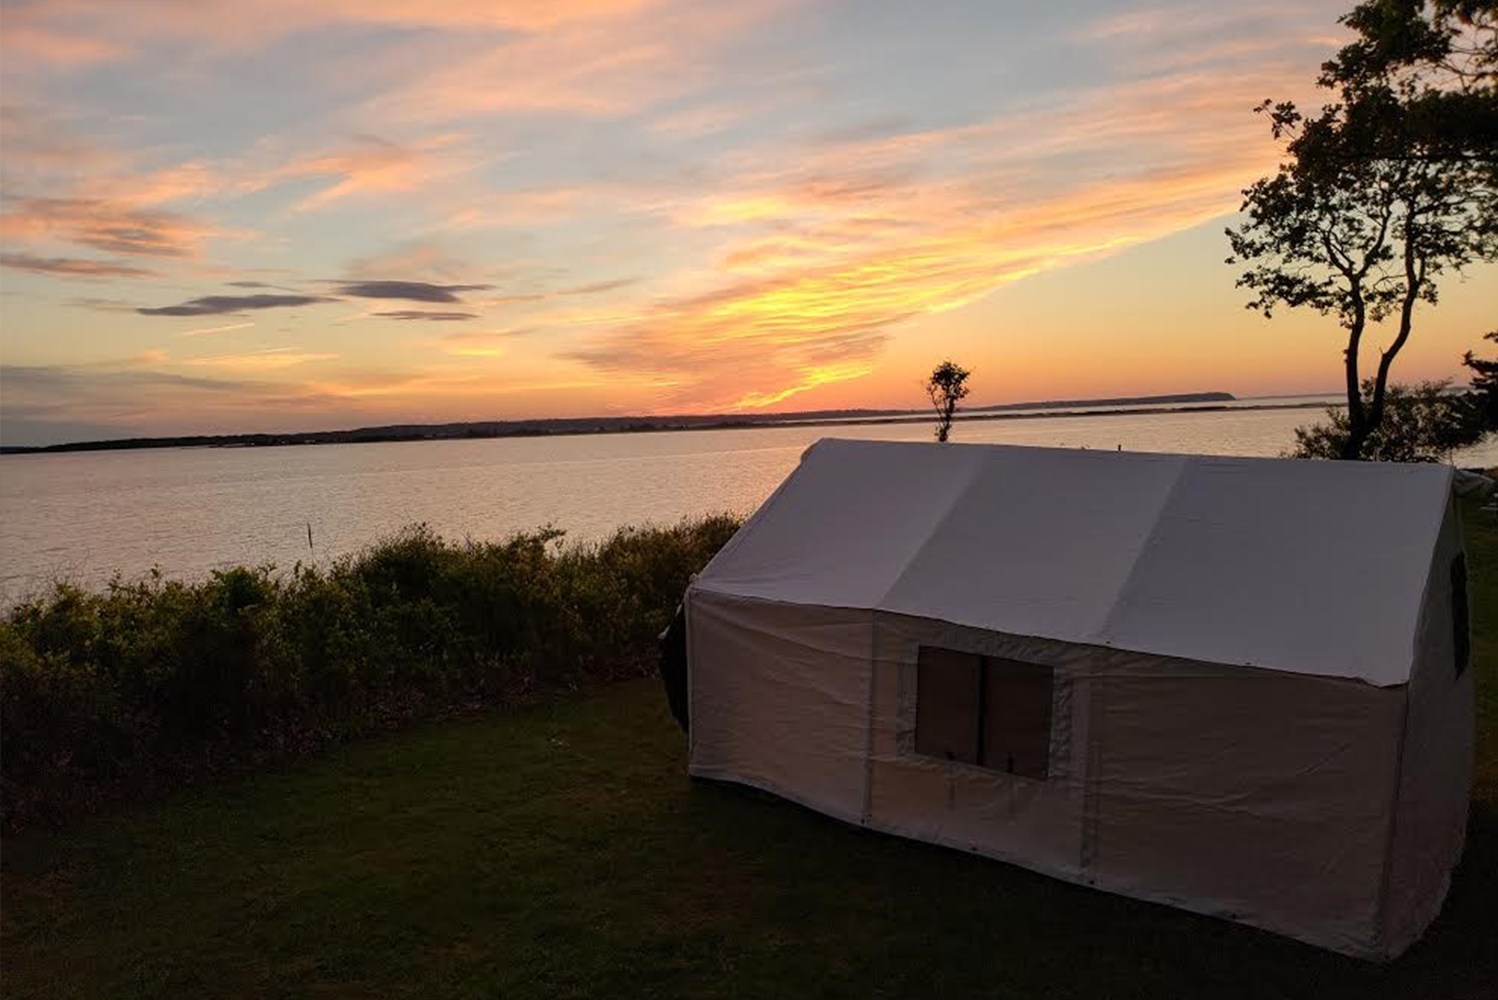 Terra Glamping: East Hampton will open from May 24 to the last weekend of October.